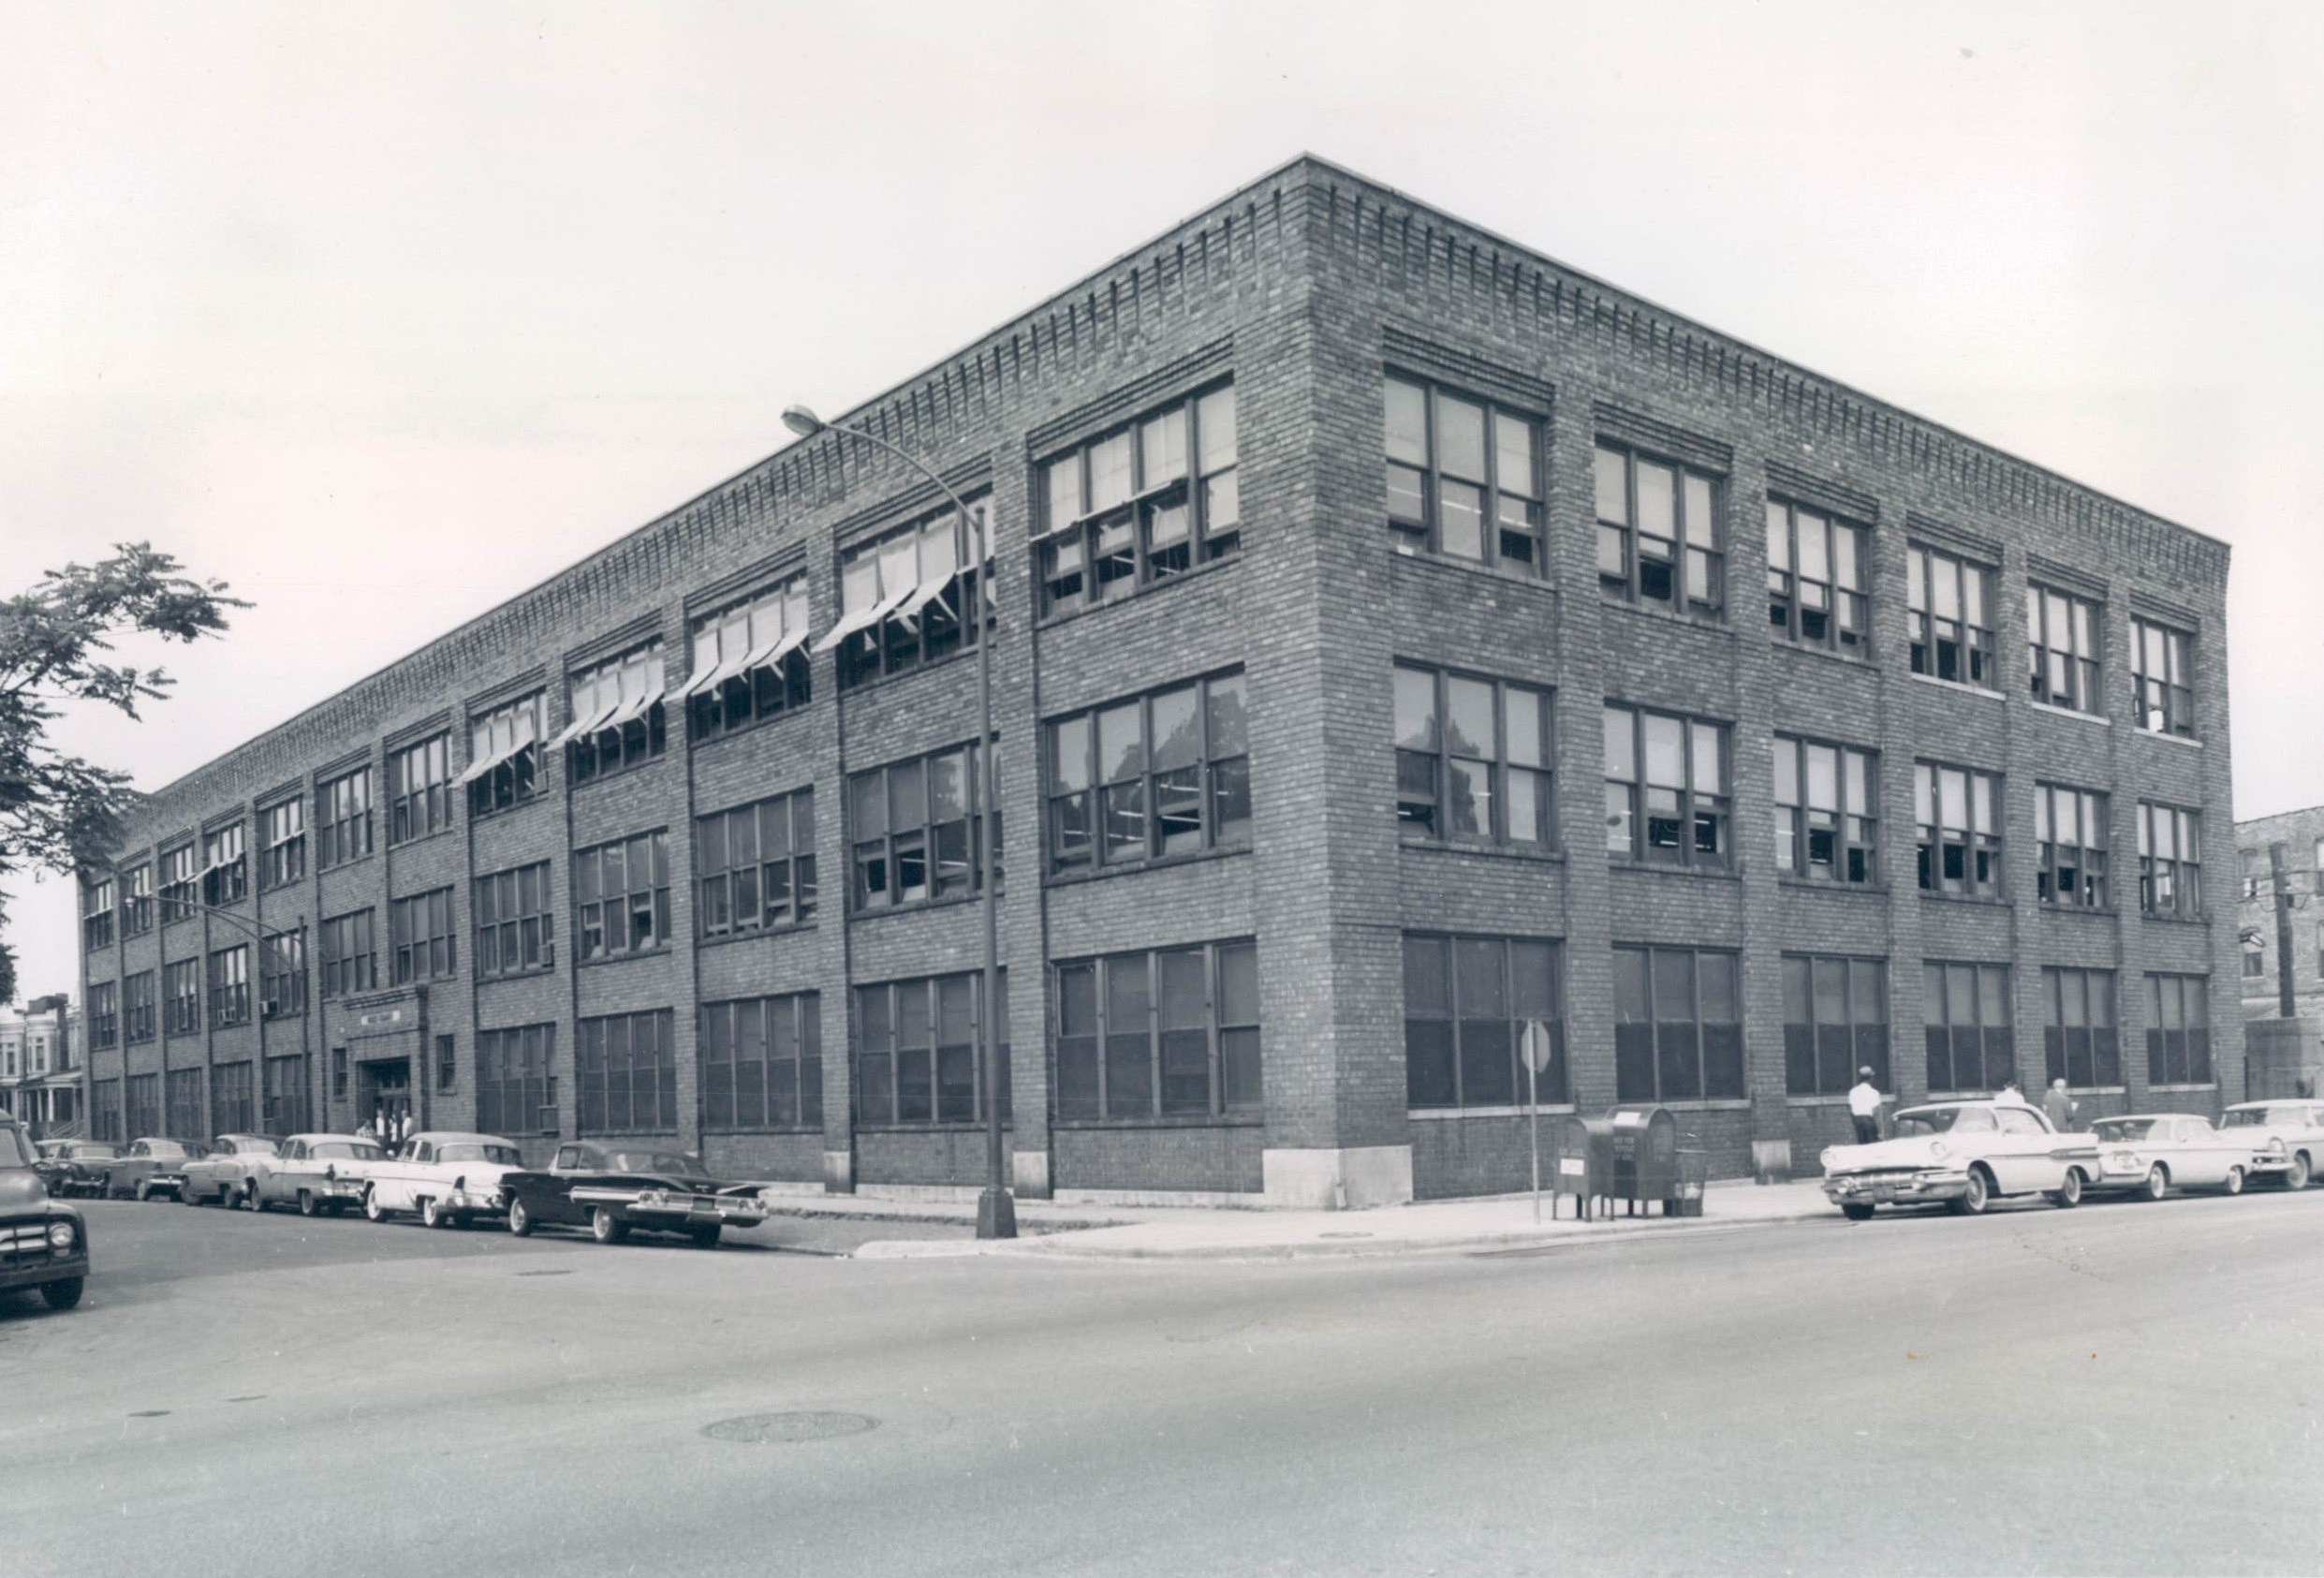 A warehouse for children: Goodwill used this building, pictured here in 1960, as a retail shop and warehouse. After purchasing the building for $75,000, Chicago Public Schools attempted to repurpose it as an elementary school.